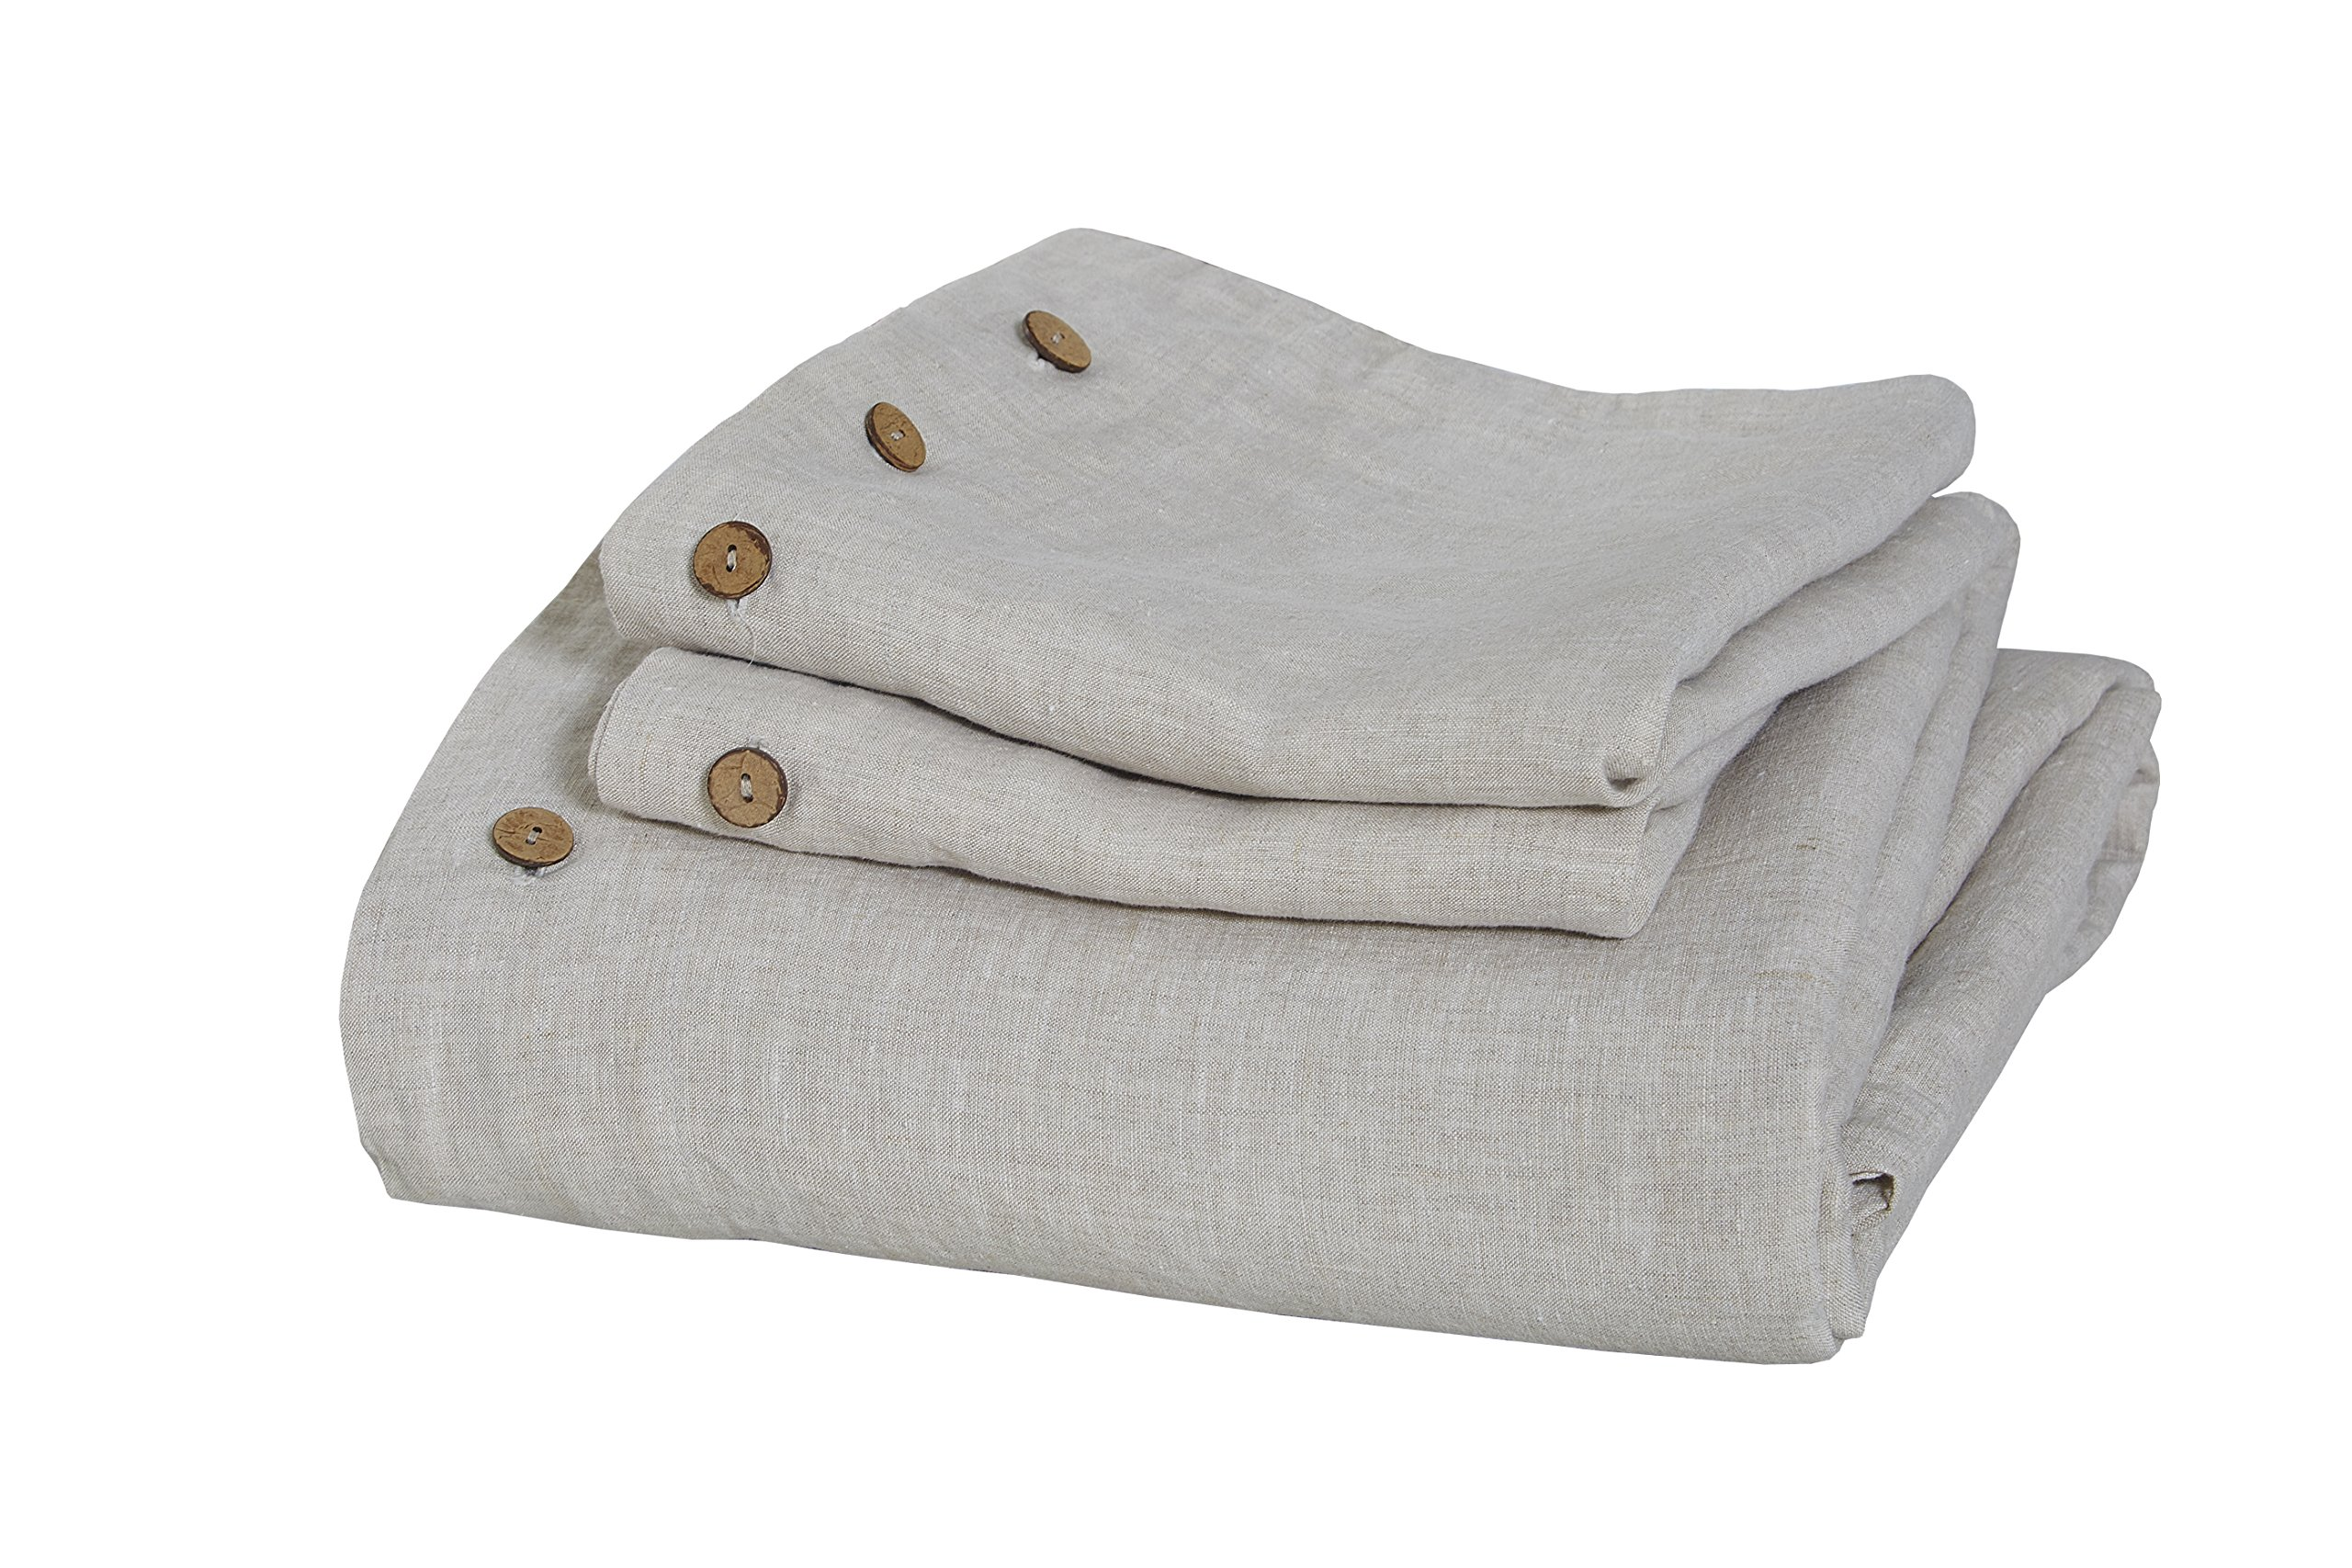 Pure French Linen 3PC Duvet Cover Set in Natural Linen Color, with Natural Coconut Shell Button Closure on Both Duvet Cover and Shams. (QUEEN)